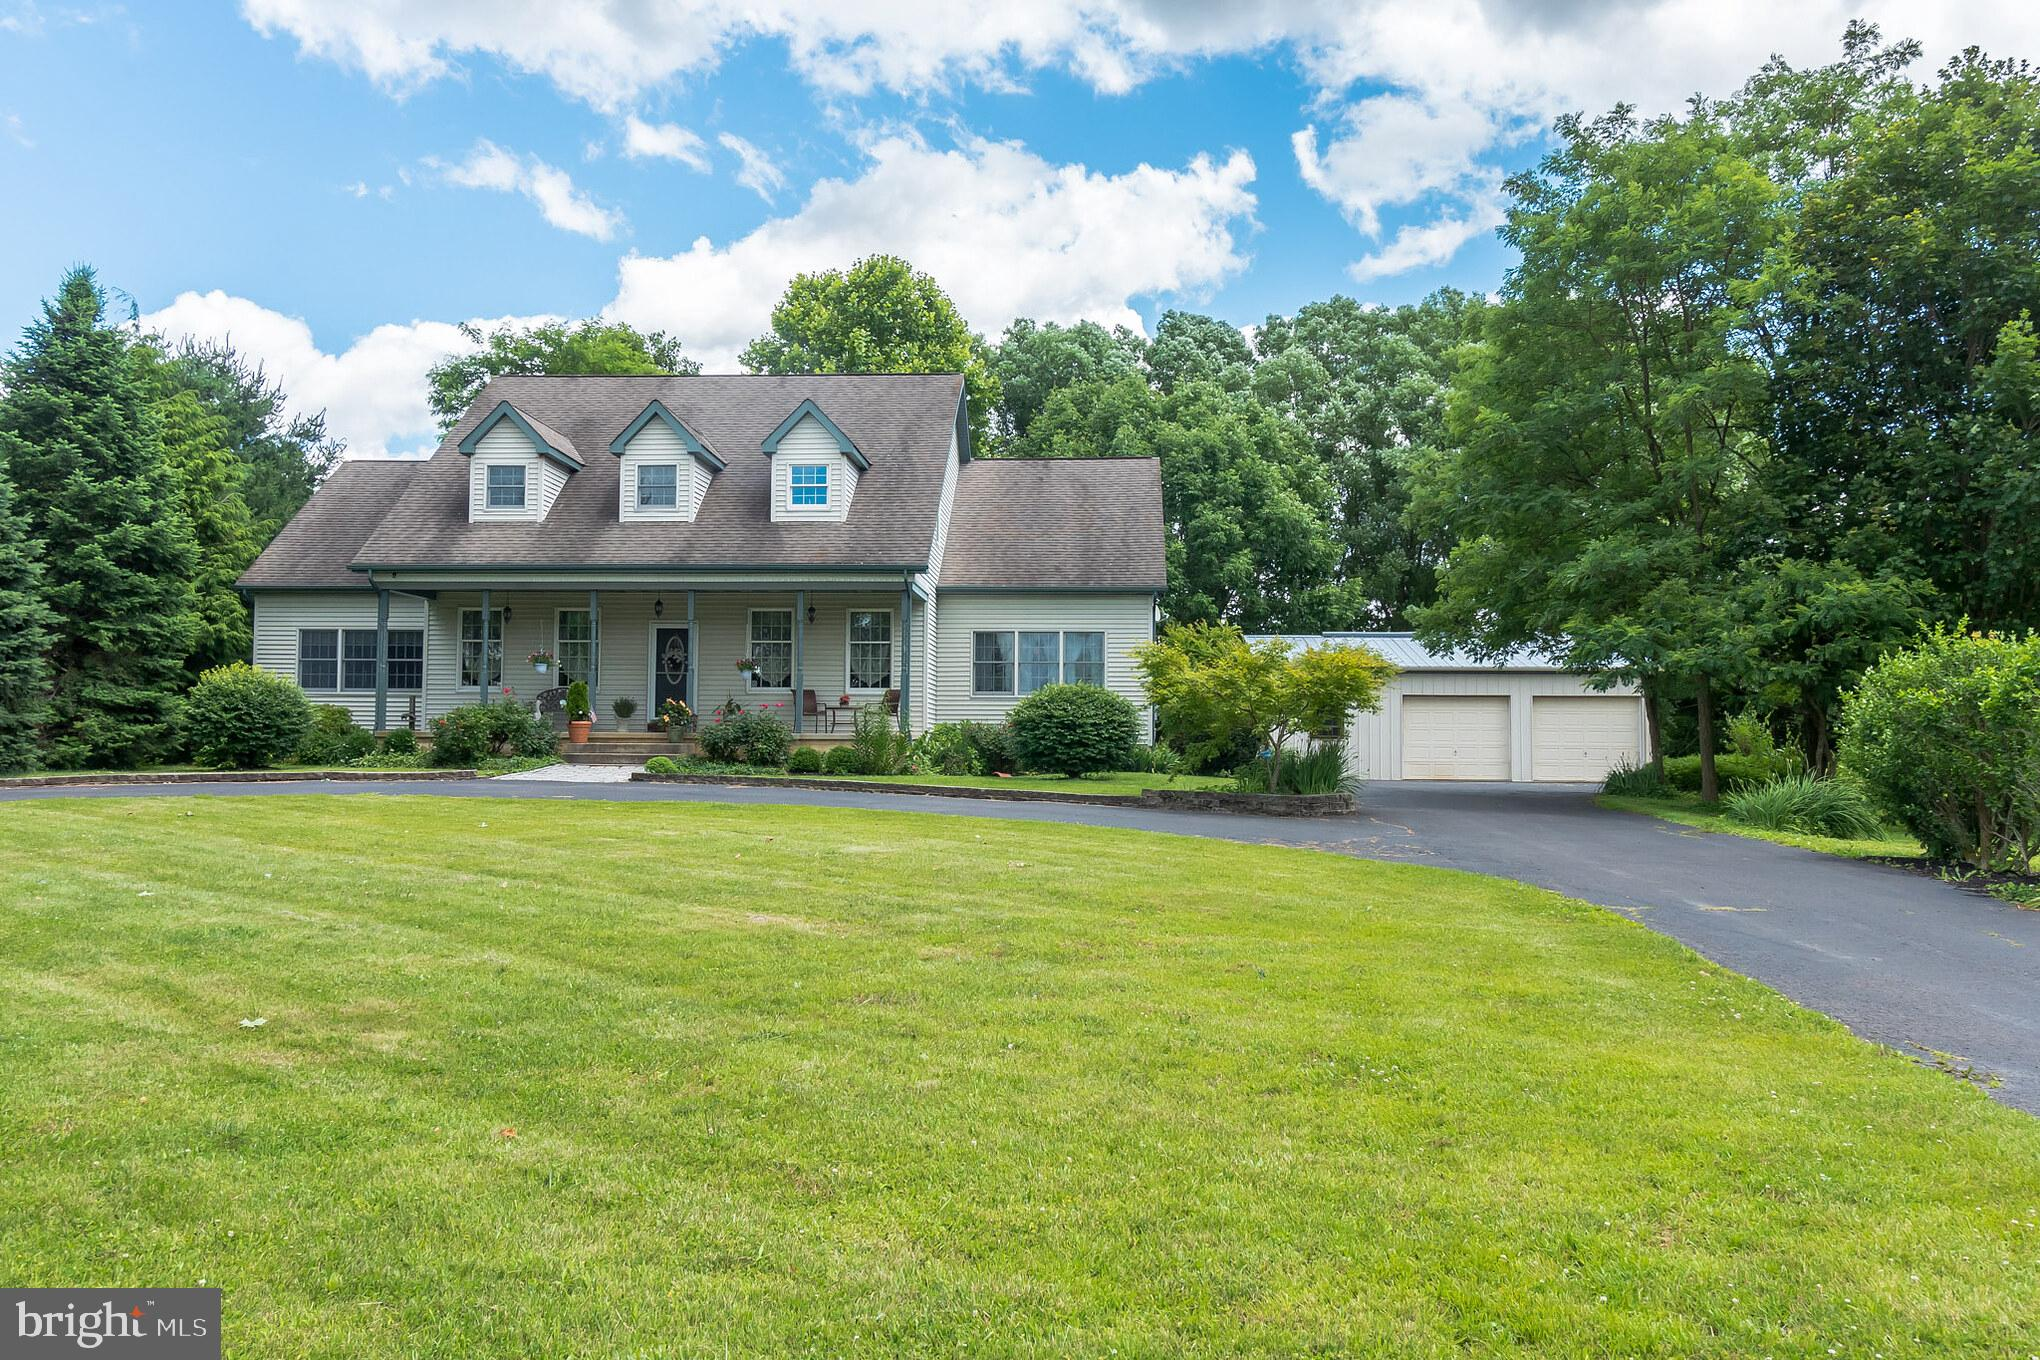 1039 OXMEAD ROAD, MOUNT HOLLY, NJ 08060